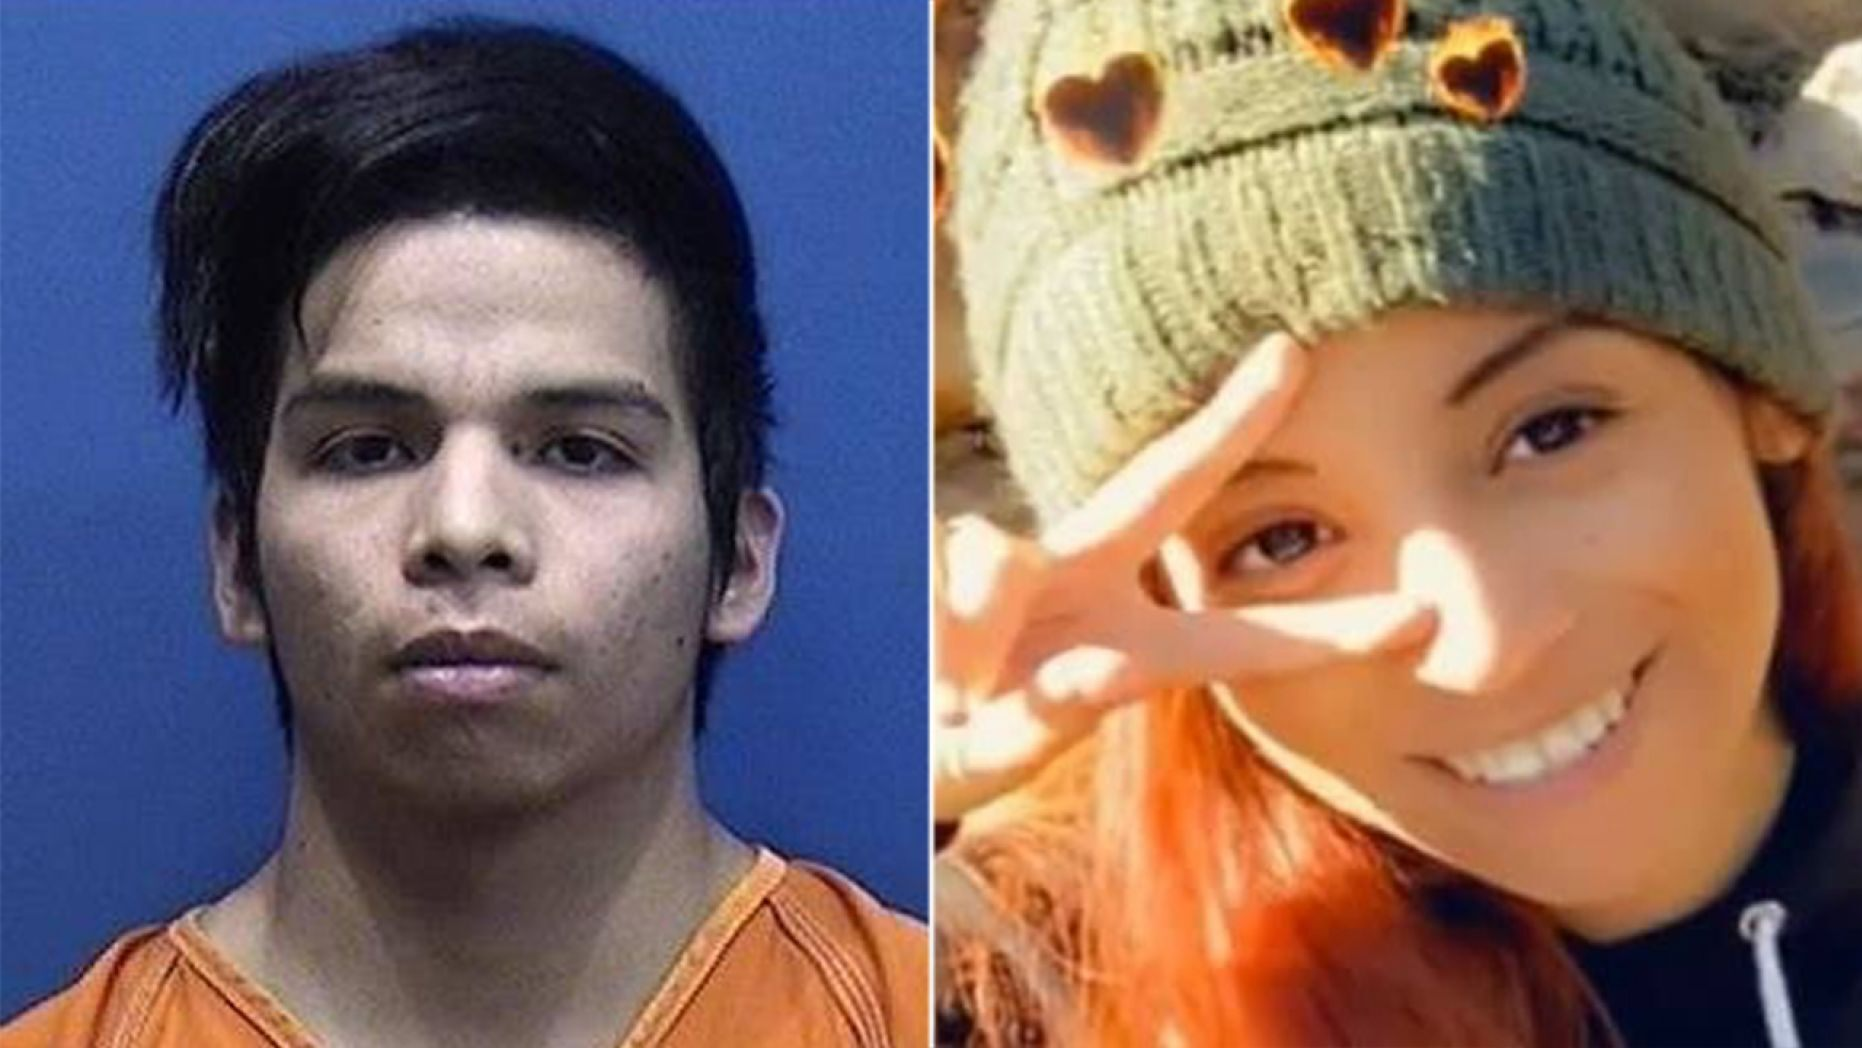 Eduardo Arevalo told police he killed his sister Viridiana because she was an 'embarrassment to their family'